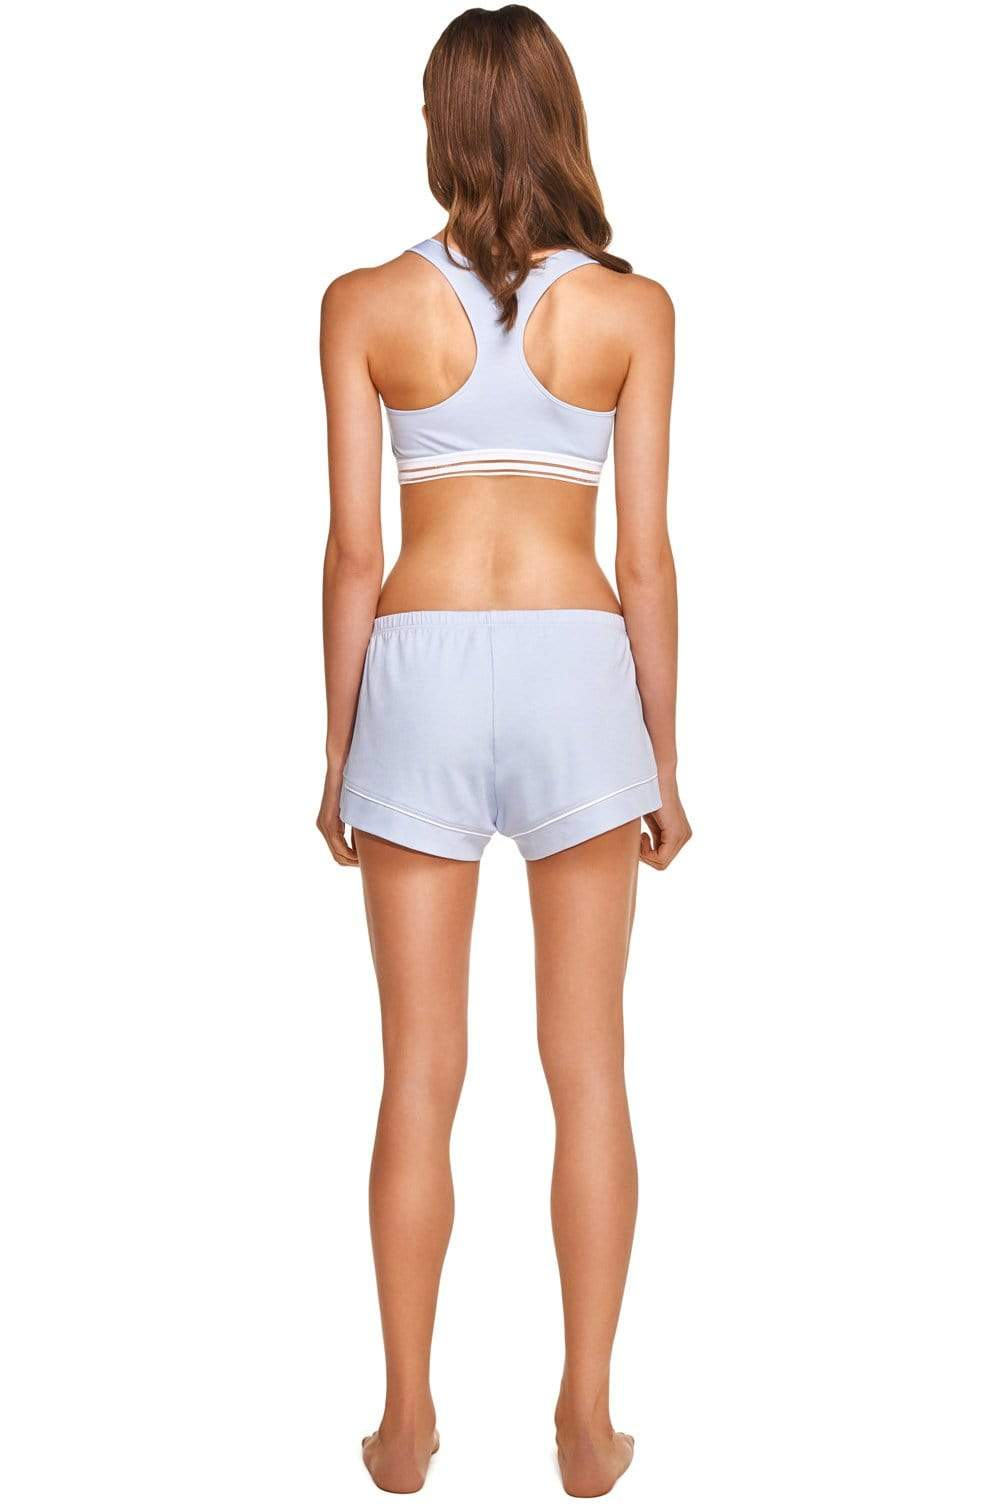 Slow Nature® Essentials shorts Loungewear Shorts. sustainable fashion ethical fashion